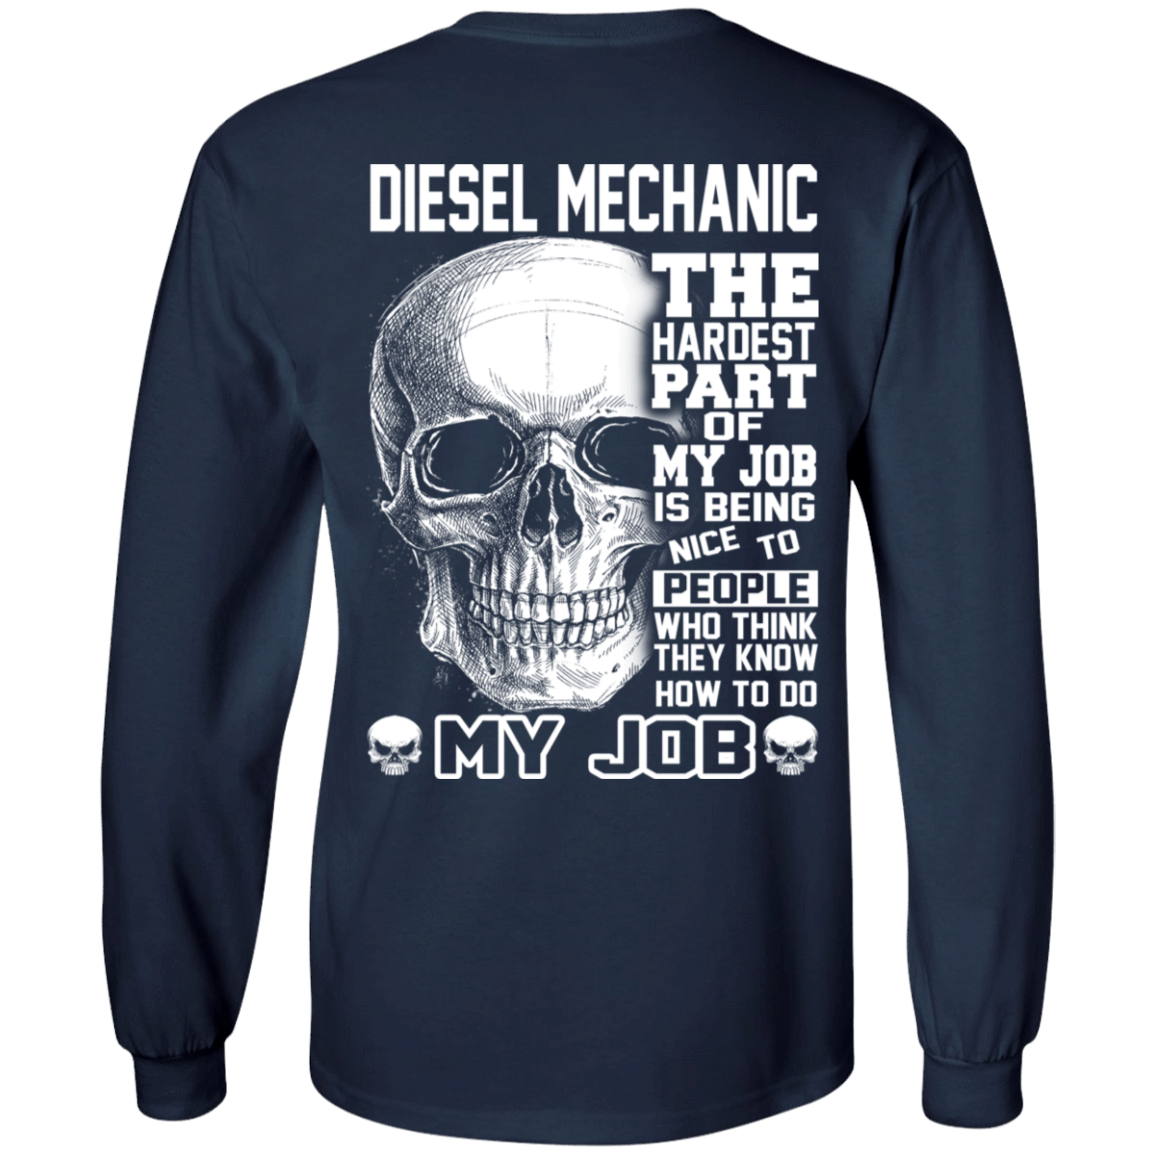 Diesel Mechanic The Hardest Part Of My Job 30-184-71609244-331 - Tee Ript